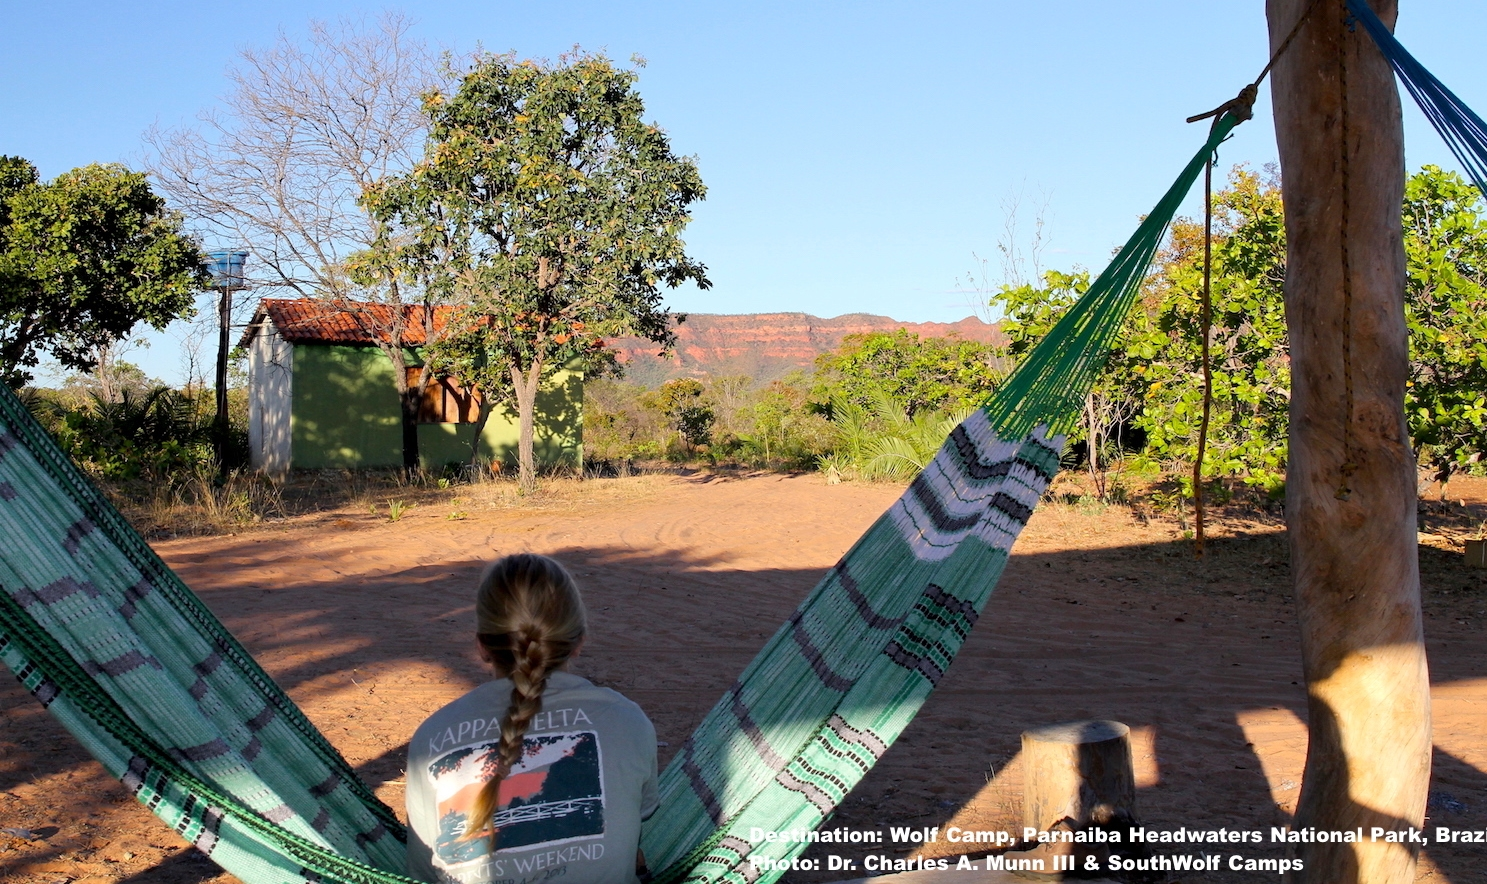 RELAXING AT WOLF CLIFF CAMP. HERE YOU CAN DRINK IN BRAZIL'S CERRADO, AN ANCIENT AND BIODIVERSE ECOSYSTEM COMPRISED OF GRASSLAND SAVANNA, WOODLAND SAVANNA, and dry FOREST AND THE UNIQUE SPECIES FOUND HERE. IMAGE: ©DR. CHARLES A. MUNN AND SOUTHWILD, BRAZIL.